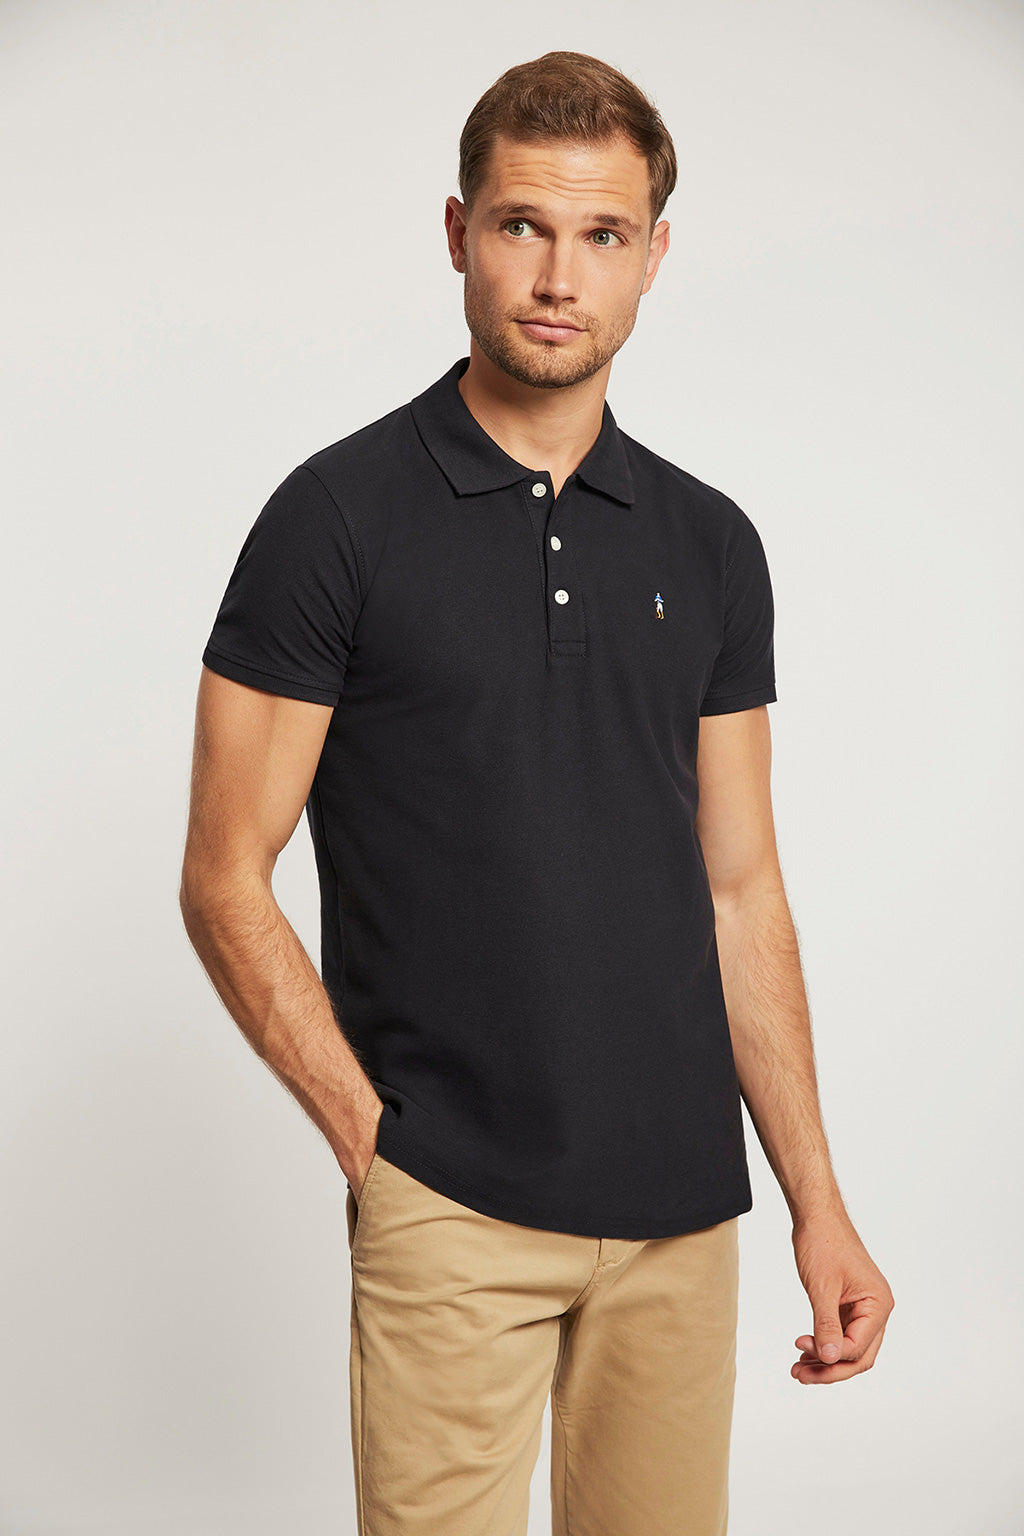 Navy blue polo shirt with multicoloured embroidery